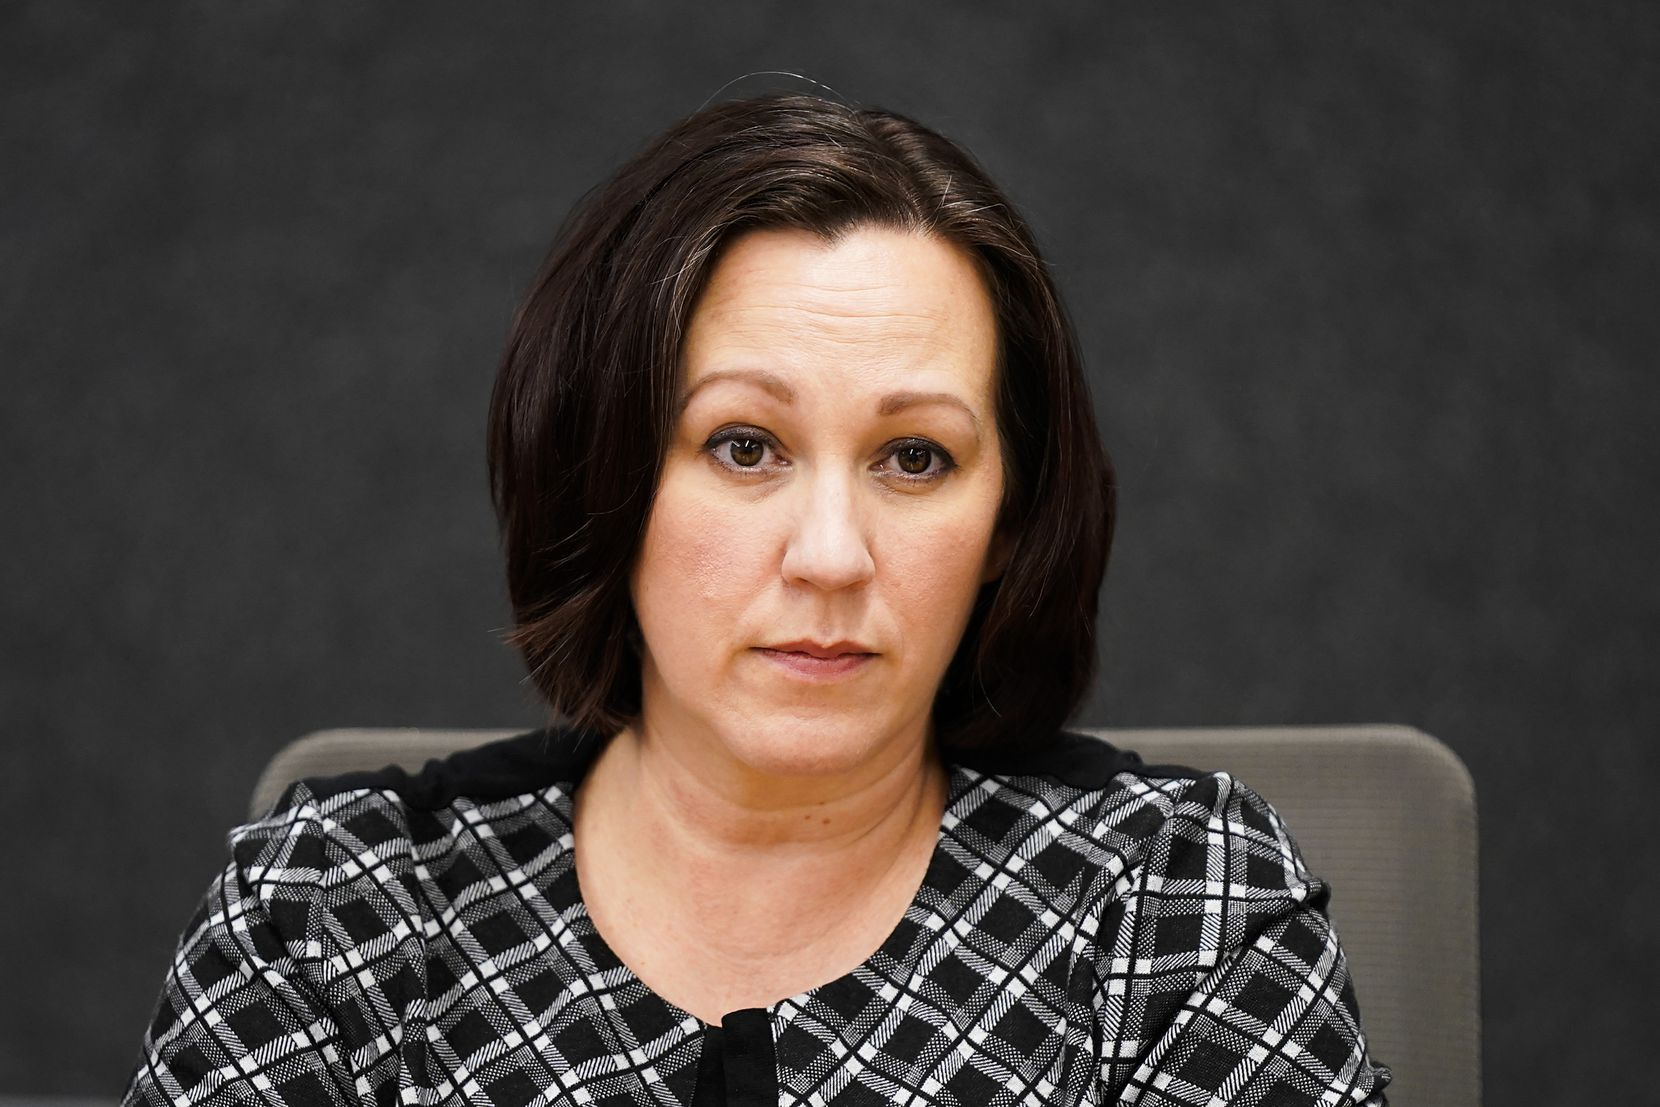 Democratic Senate hopeful MJ Hegar, shown in a meeting with The Dallas Morning News editorial board, is the only candidate running costly television ads, which could give her an advantage in reaching voters.